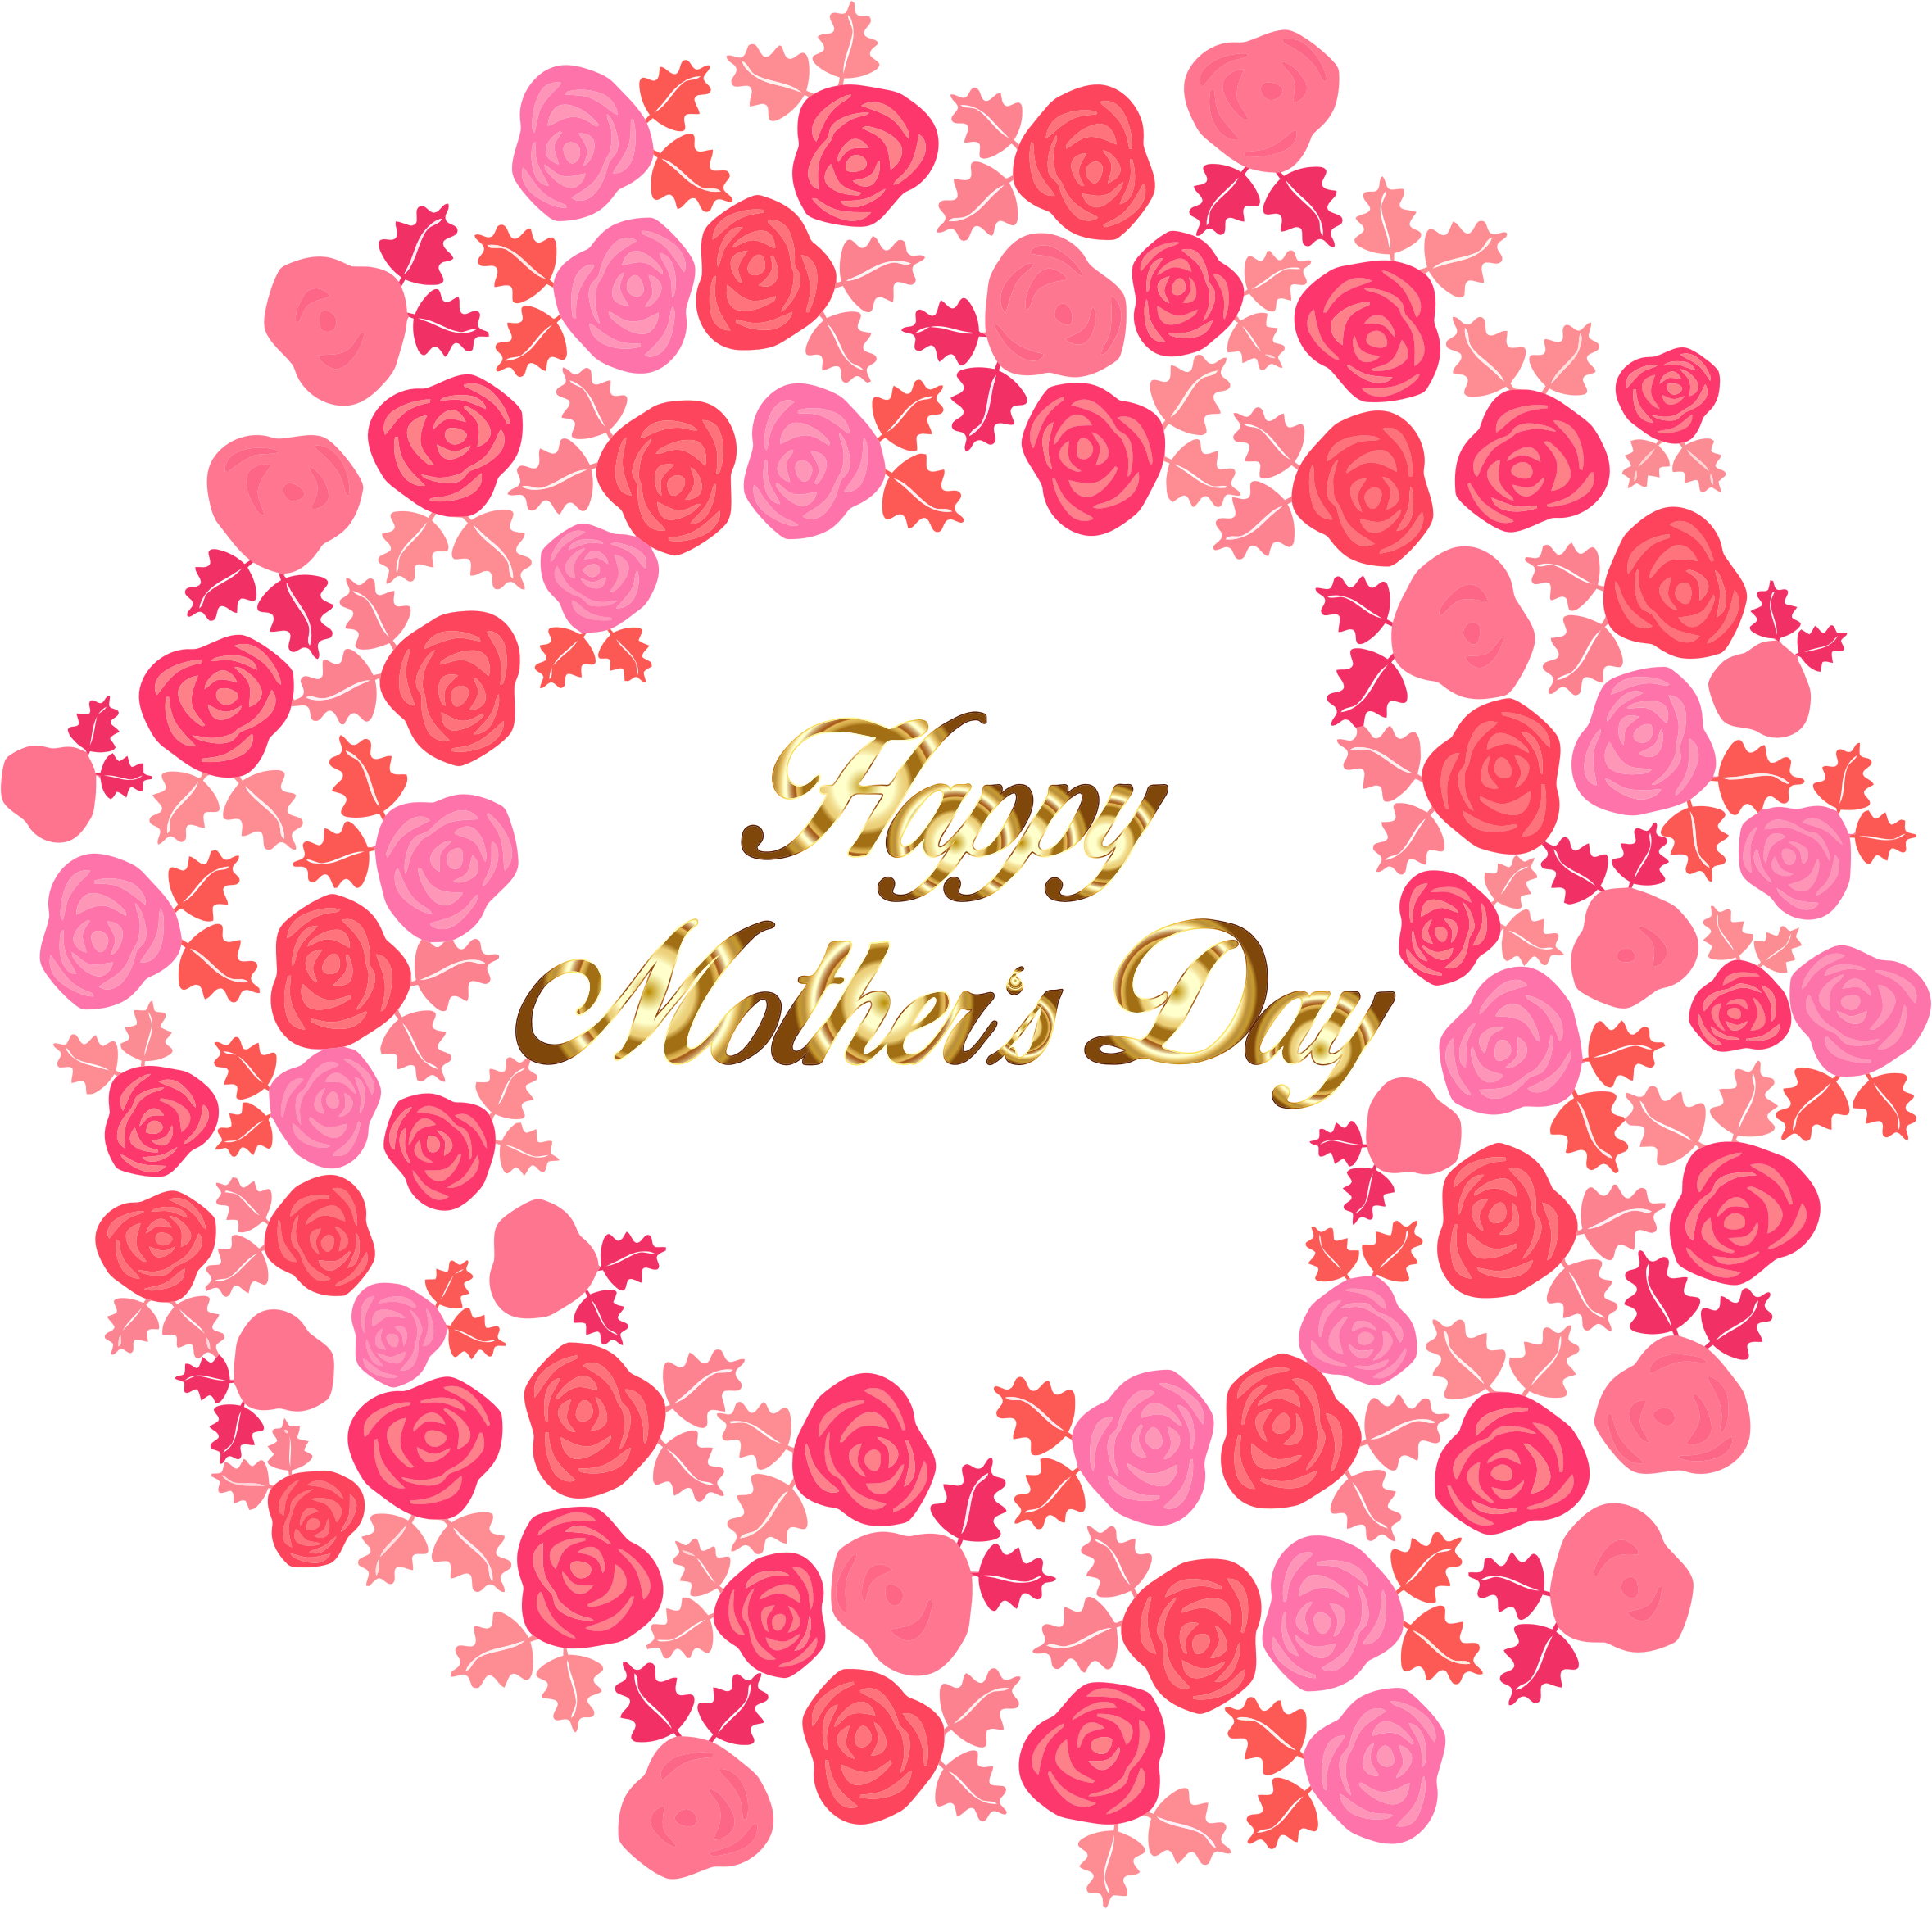 Happy Mothers Day Bouquet Of Flowers 2 by GDJ